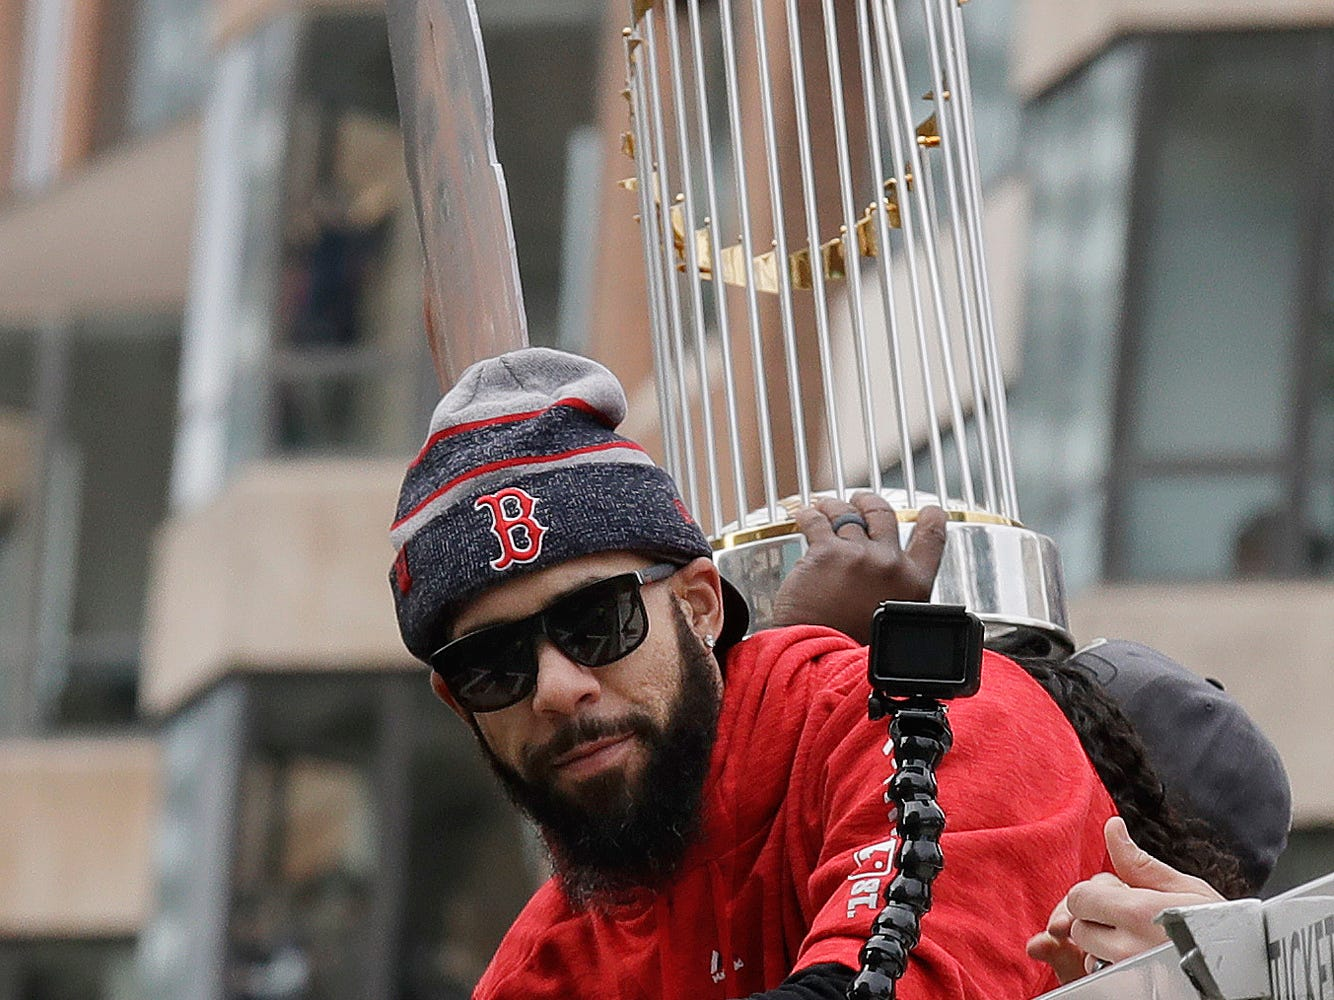 Boston Red Sox's David Price rides with the trophy during a parade to celebrate the team's World Series championship over the Los Angeles Dodgers on Oct. 31, 2018, in Boston.